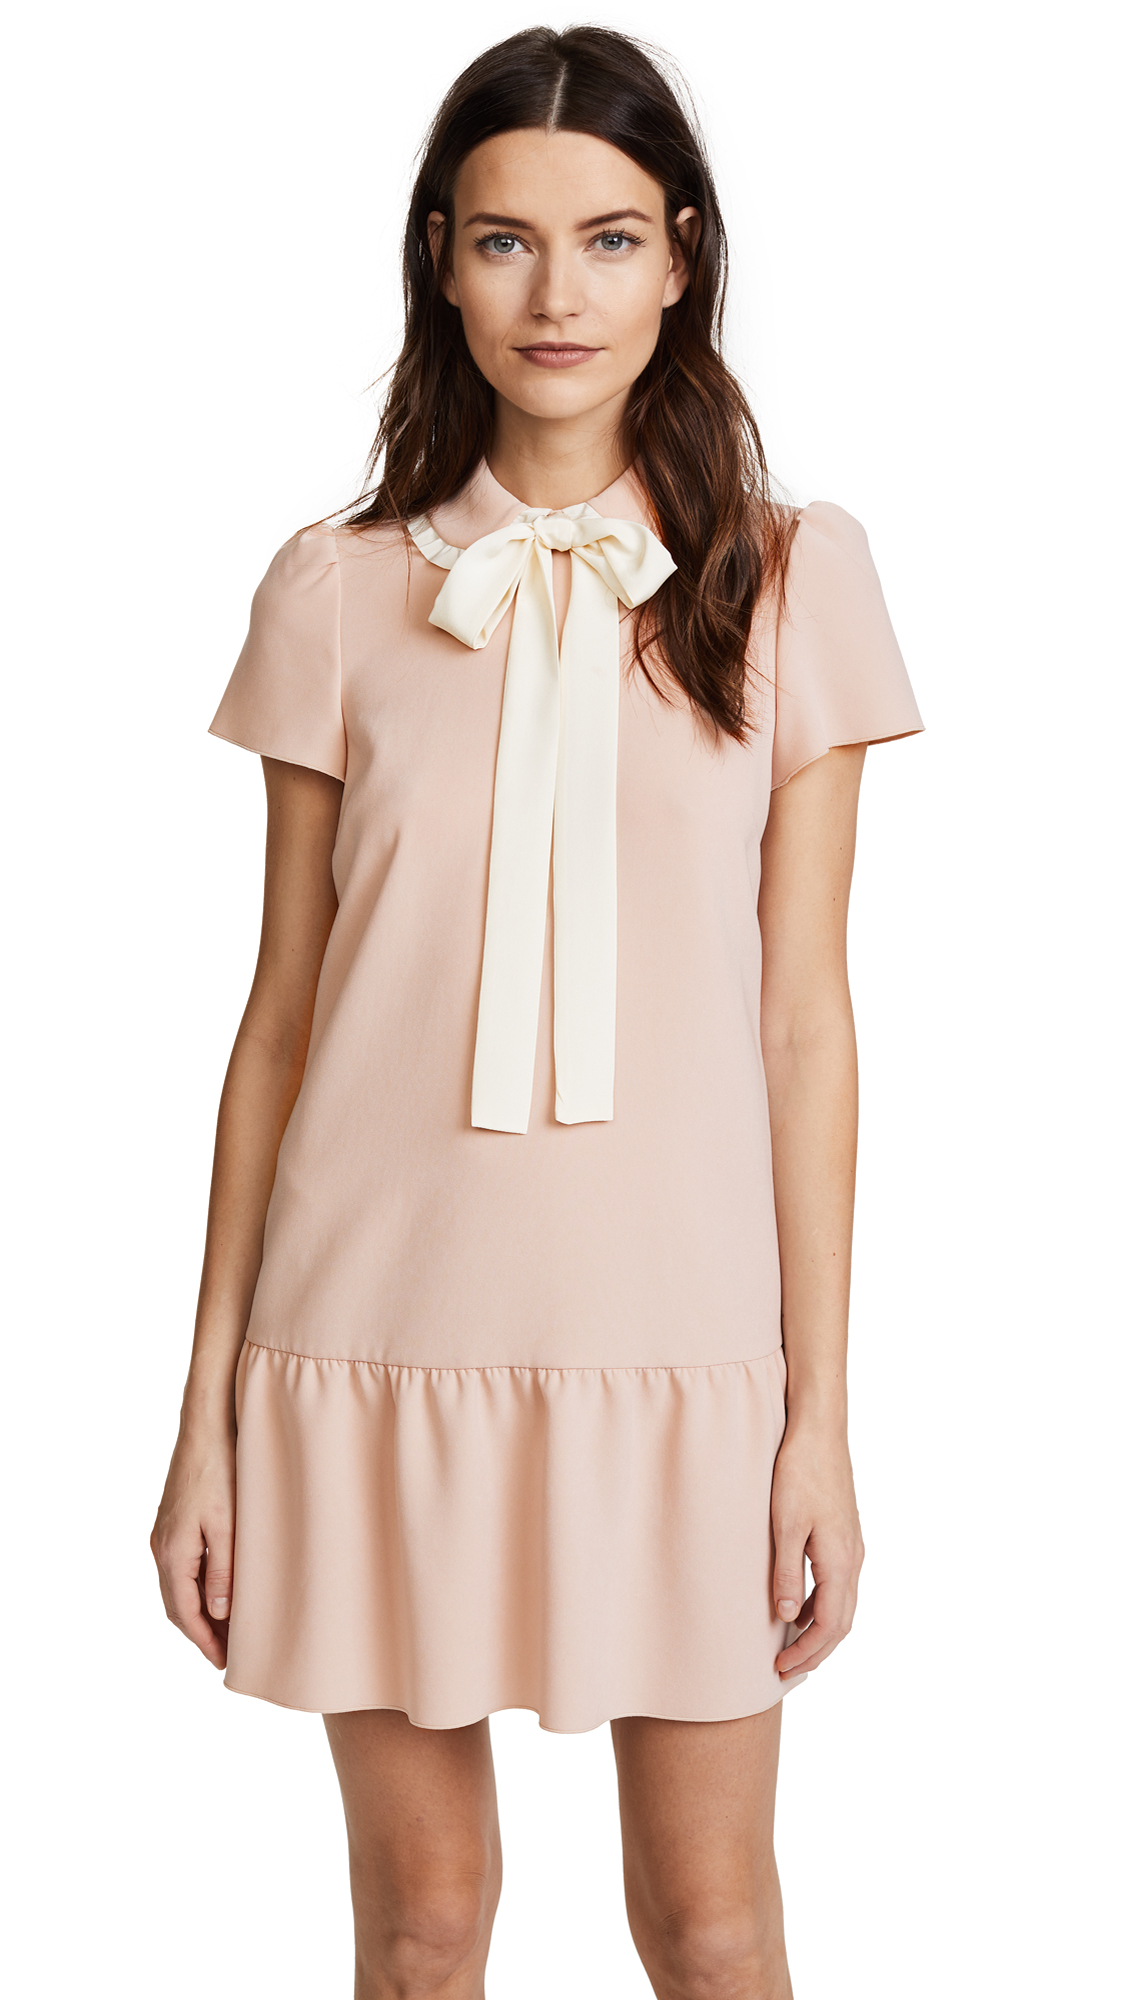 RED Valentino Collared Tie Neck Dress - Cameo/Avorio